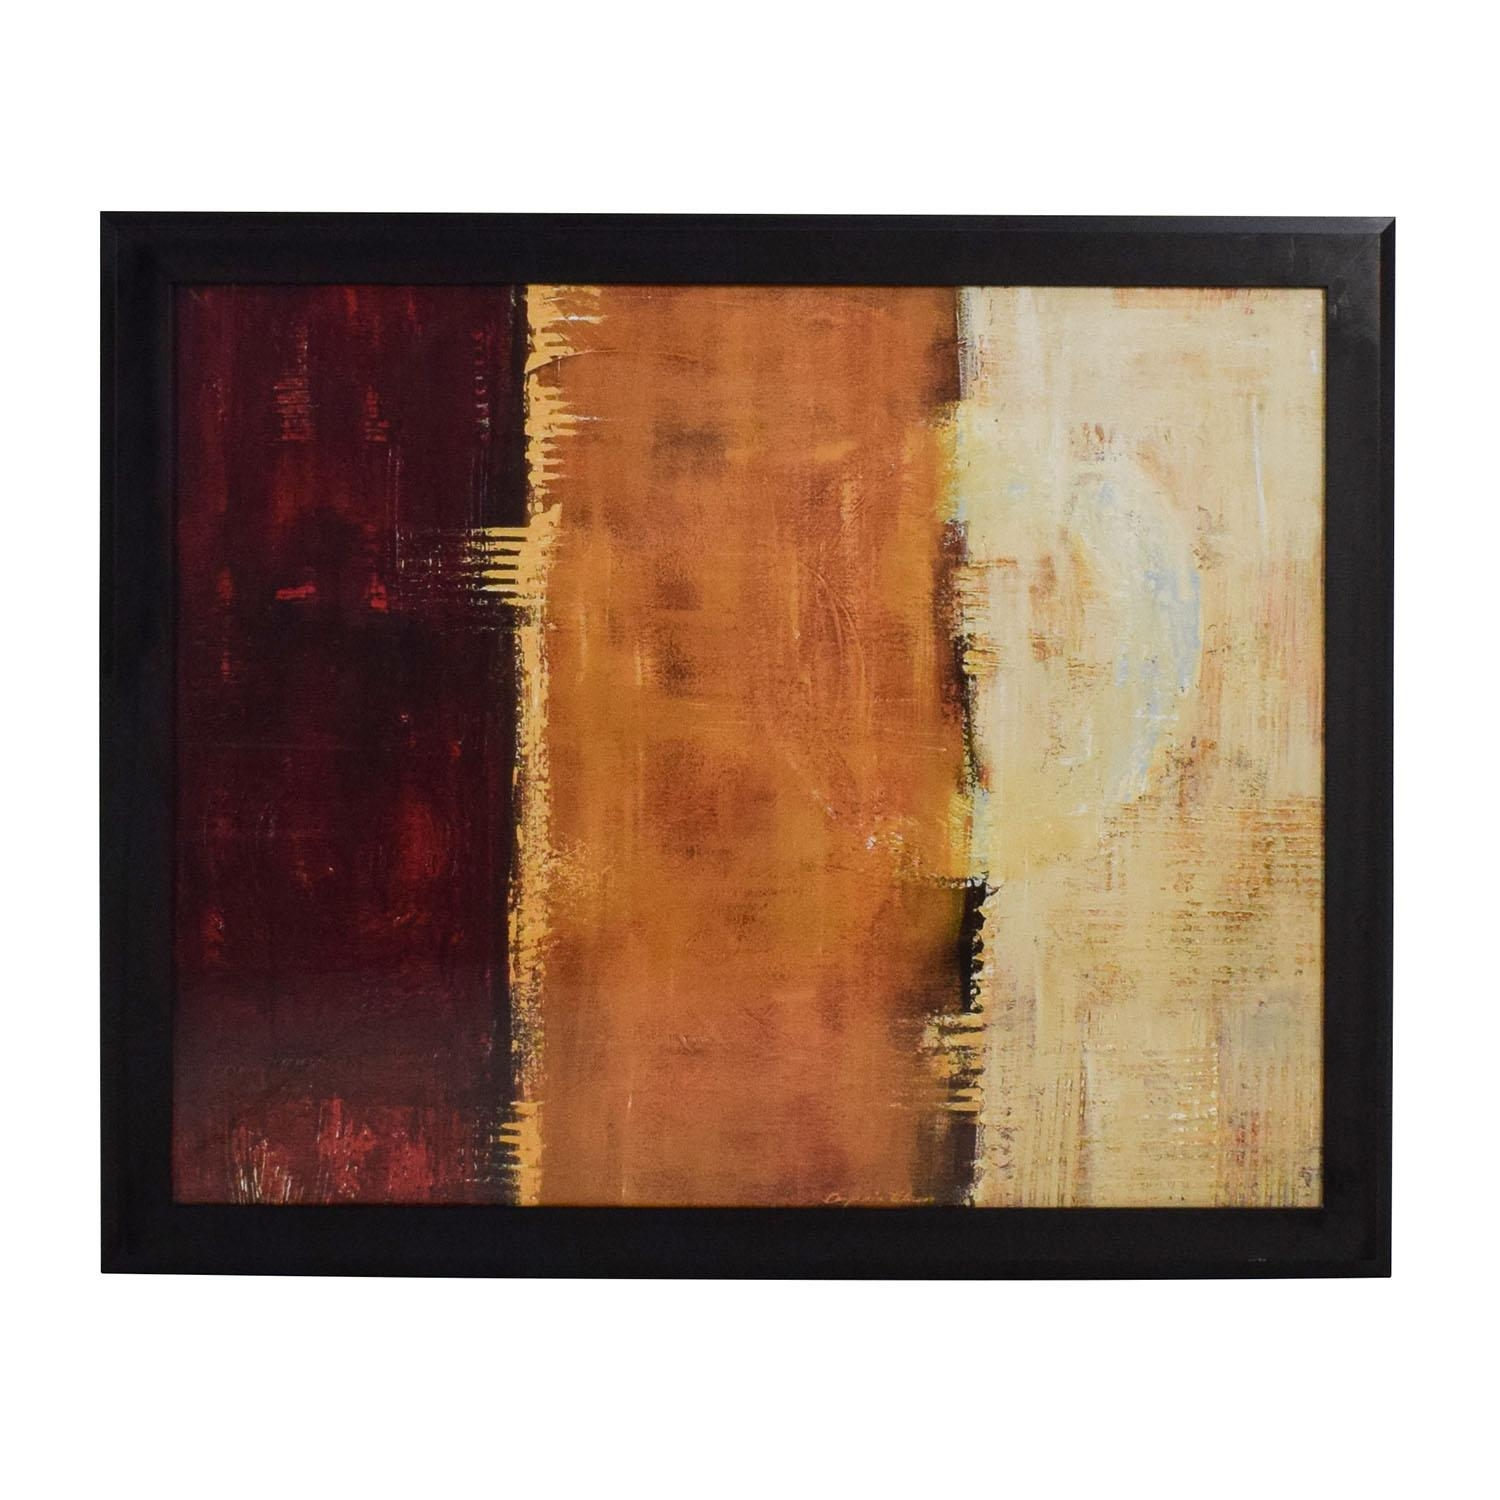 88% Off - Z Gallerie Z Gallerie Framed Canvas Red Orange Yellow regarding Red And Yellow Wall Art